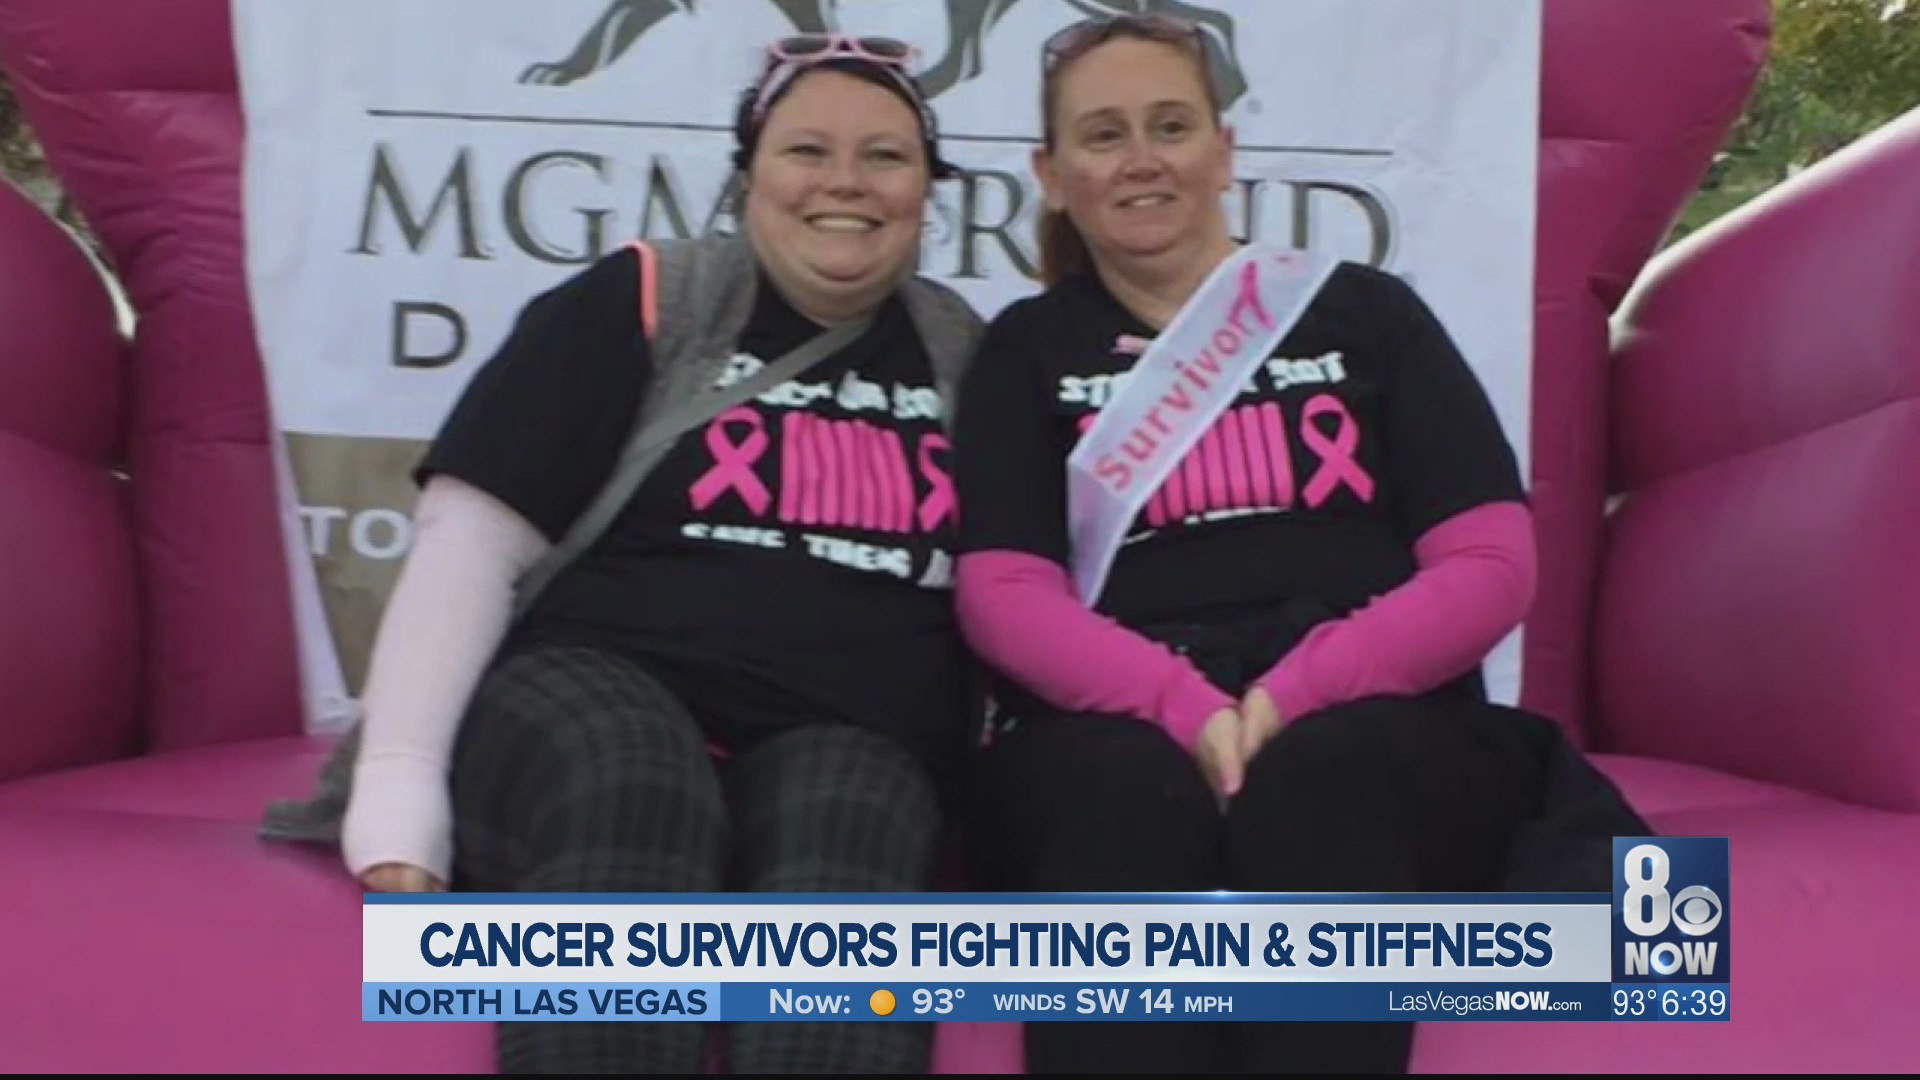 Cancer survivors fighting pain and stiffness